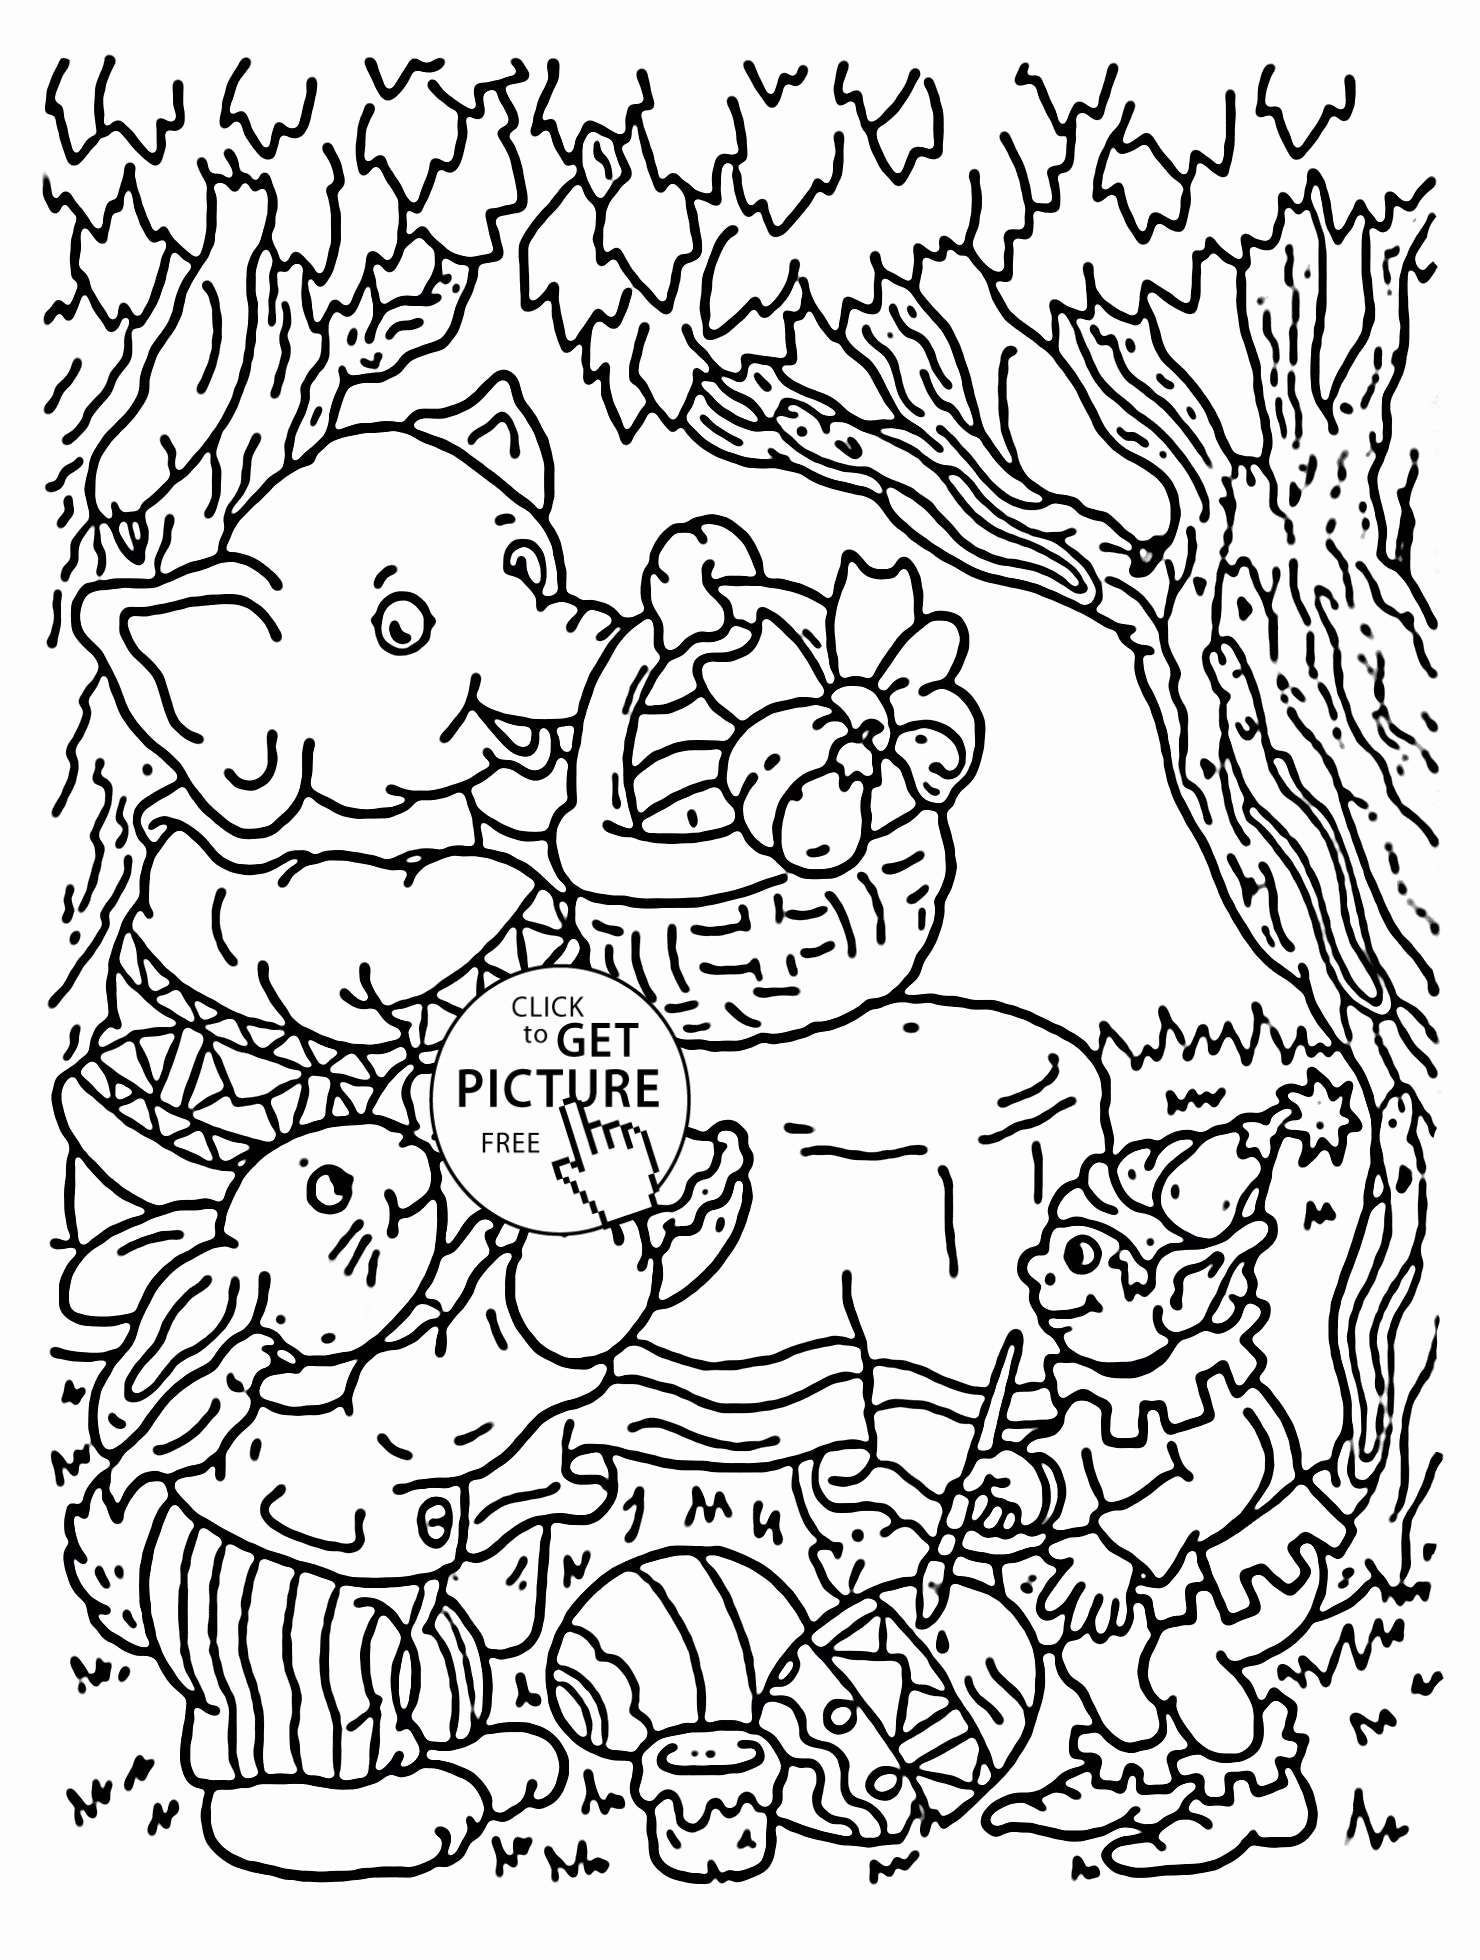 teamwork coloring pages teamwork coloring pages printable free coloring sheets coloring teamwork pages